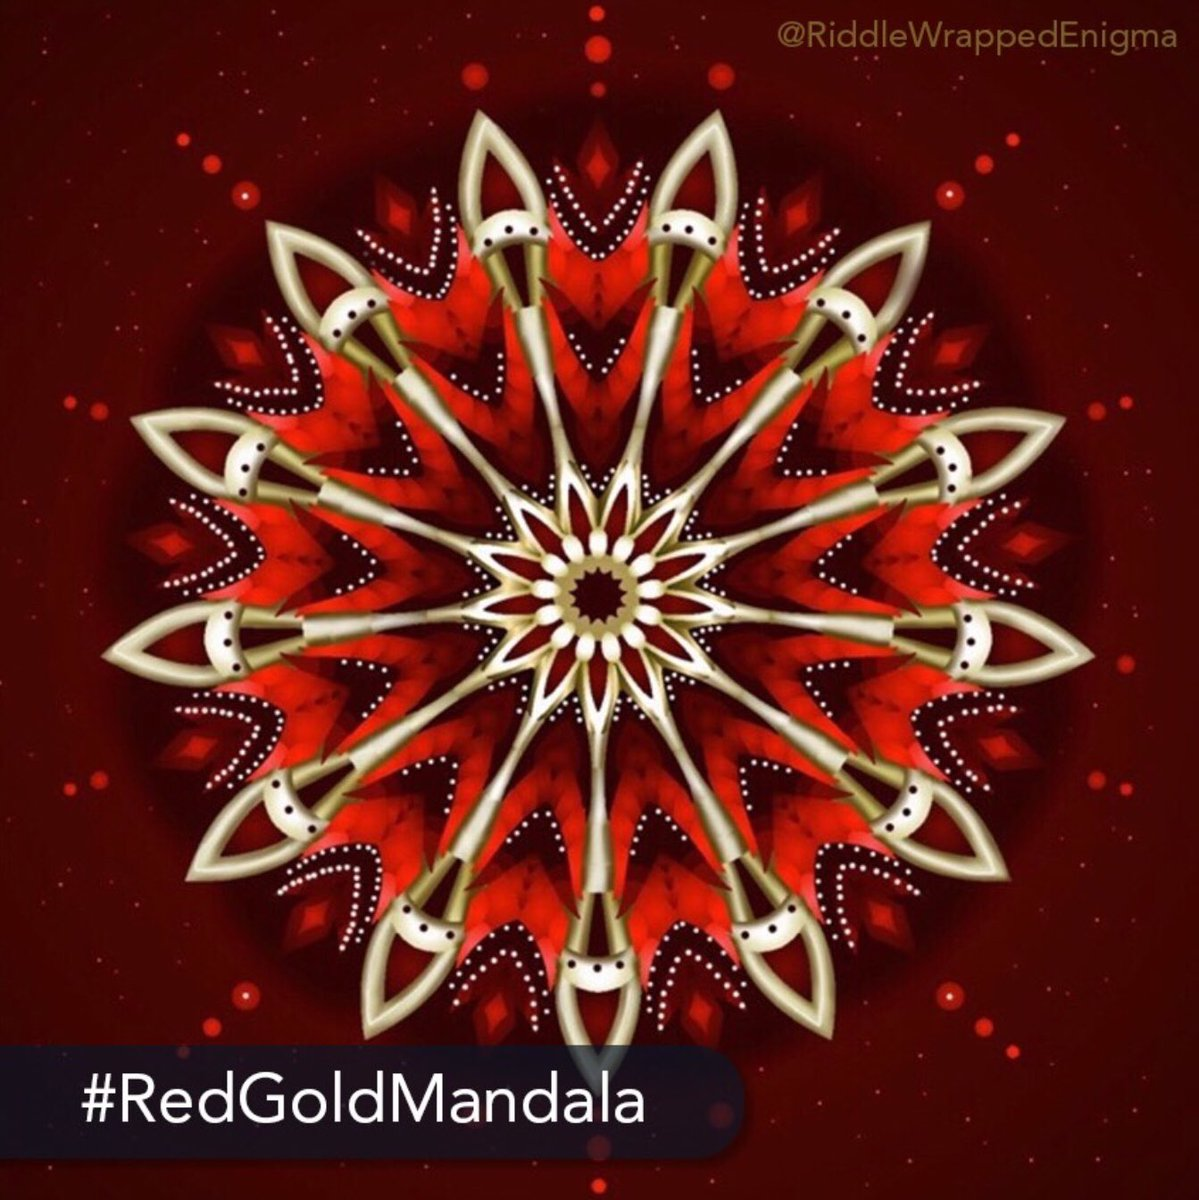 👑 The challenge: Today's #medium #challenge is to #create a #stunning #mandala #masterpiece using only #red and #gold #shades. Start 🎨 coloring with Color Therapy today: http://get.colortherapy.me #color #coloring #coloringbook